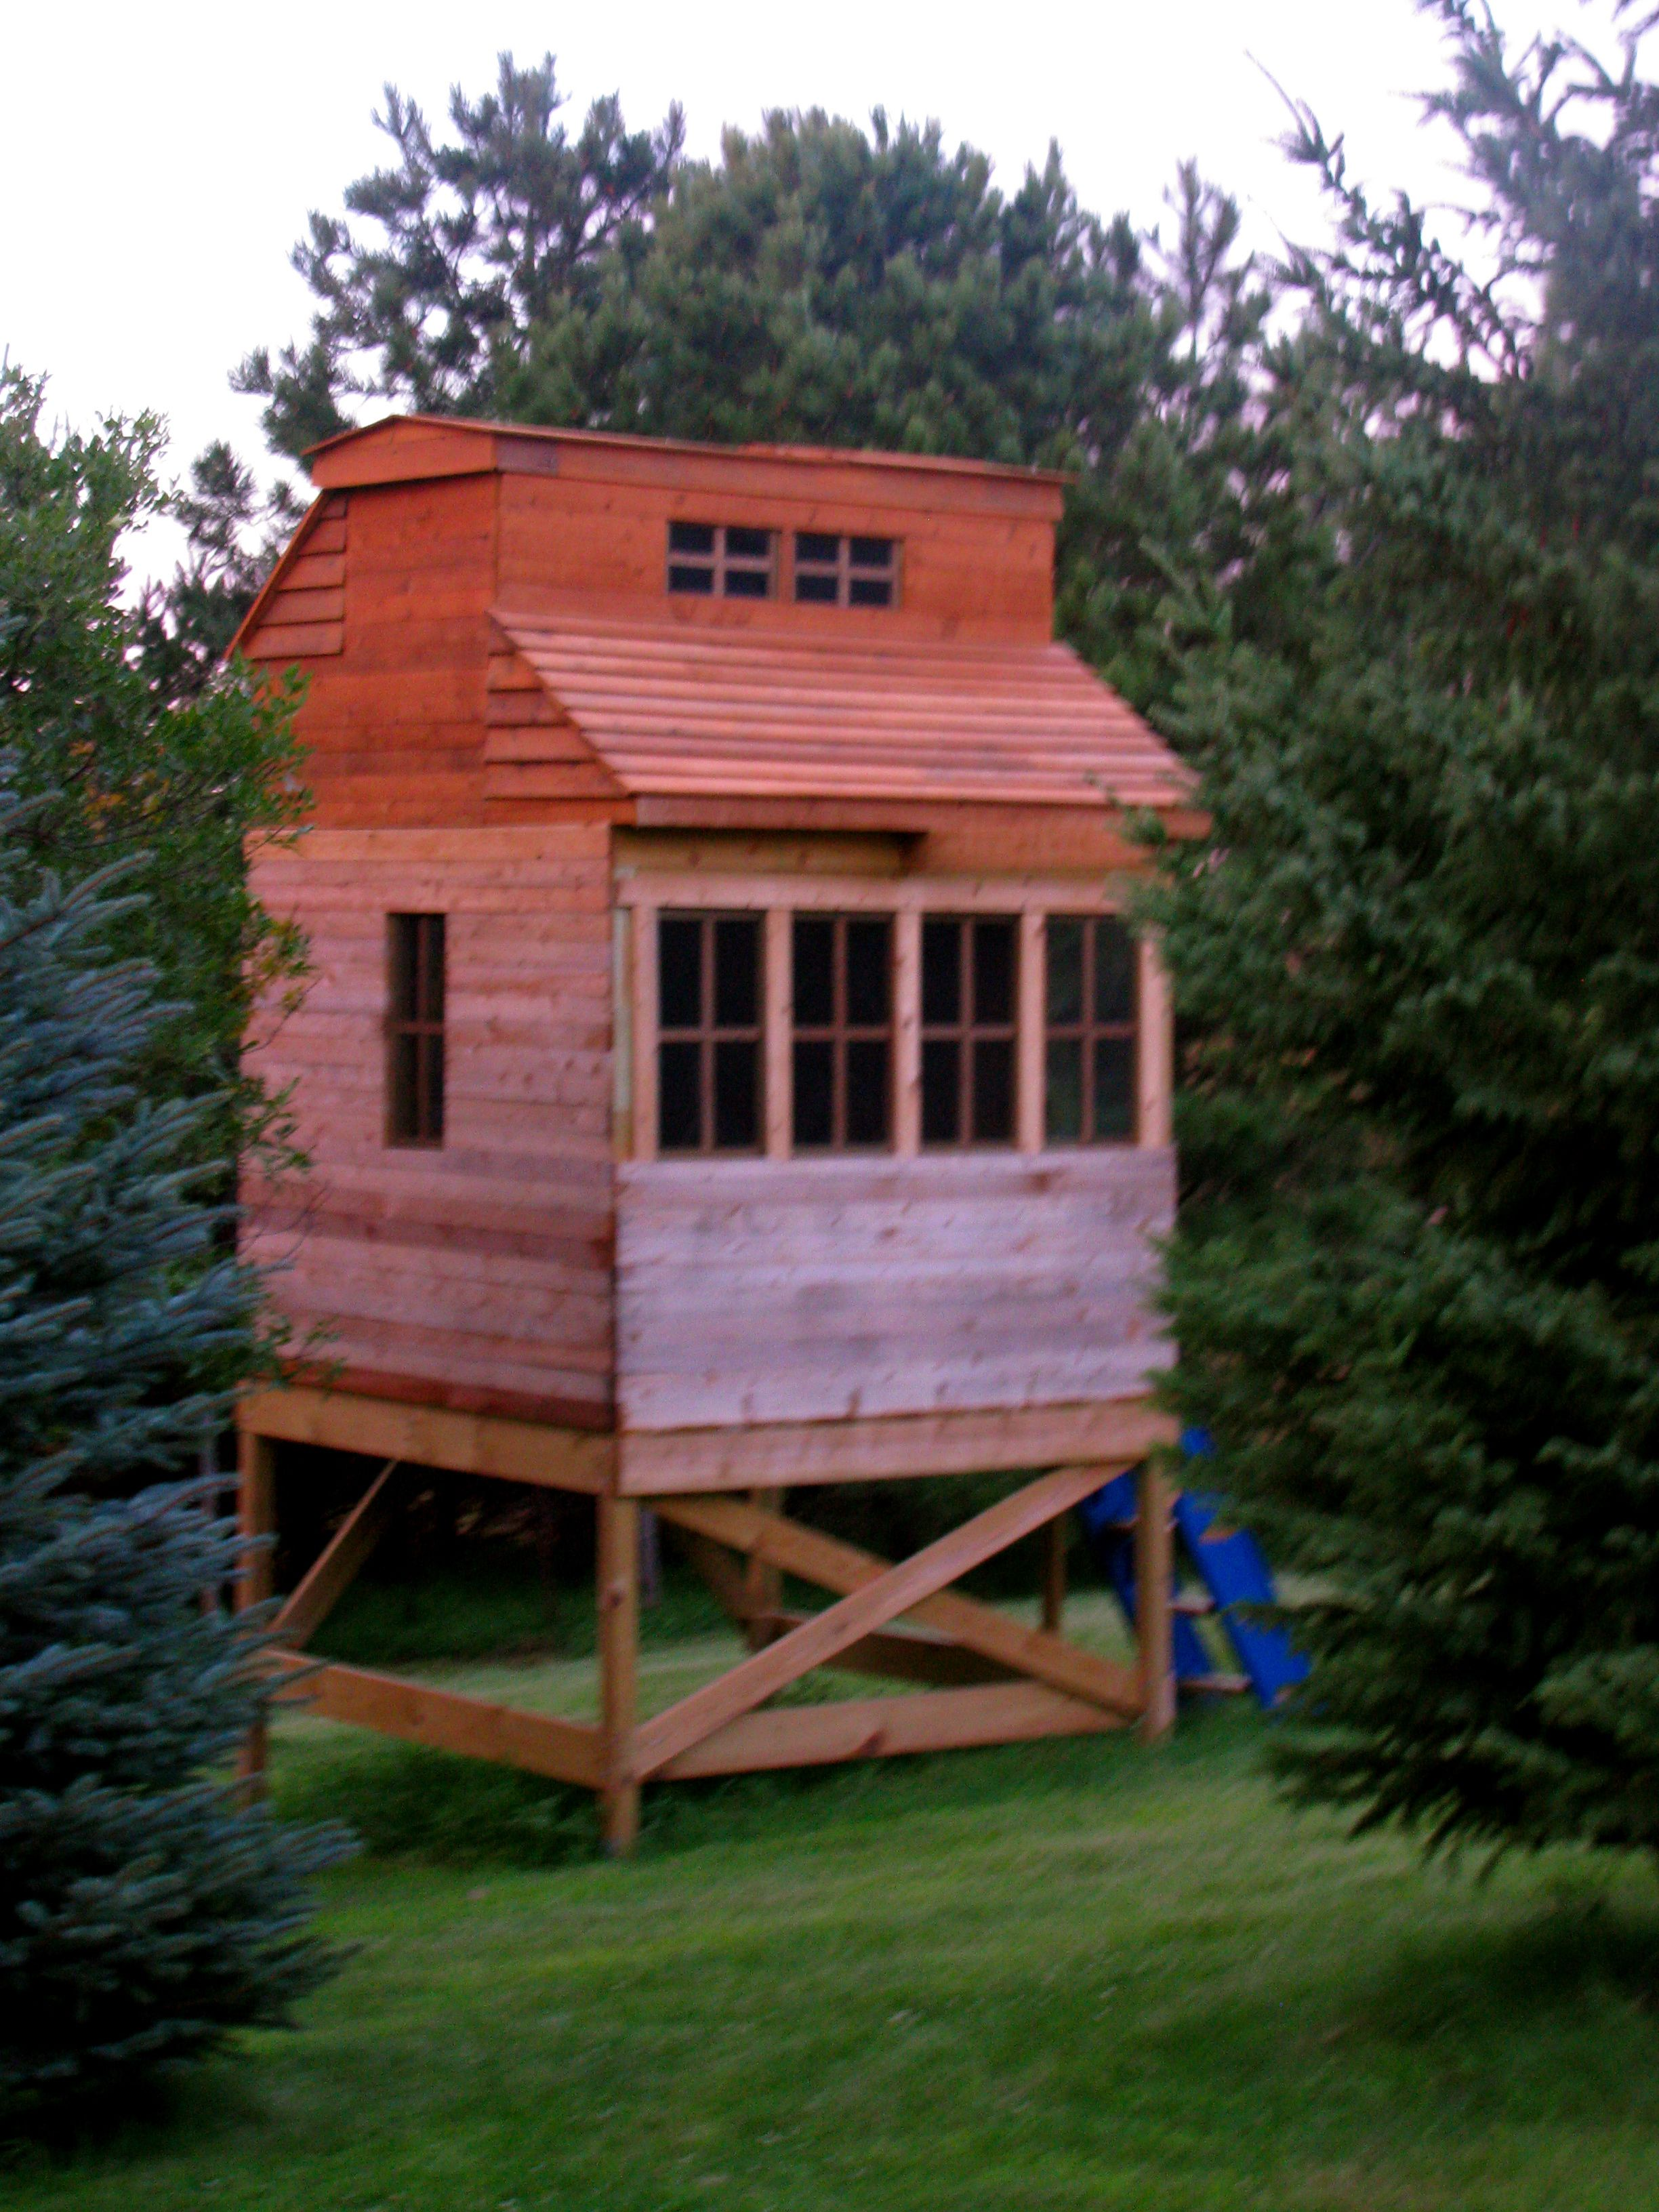 my husband built this 2 story fort with a retractable roof for our